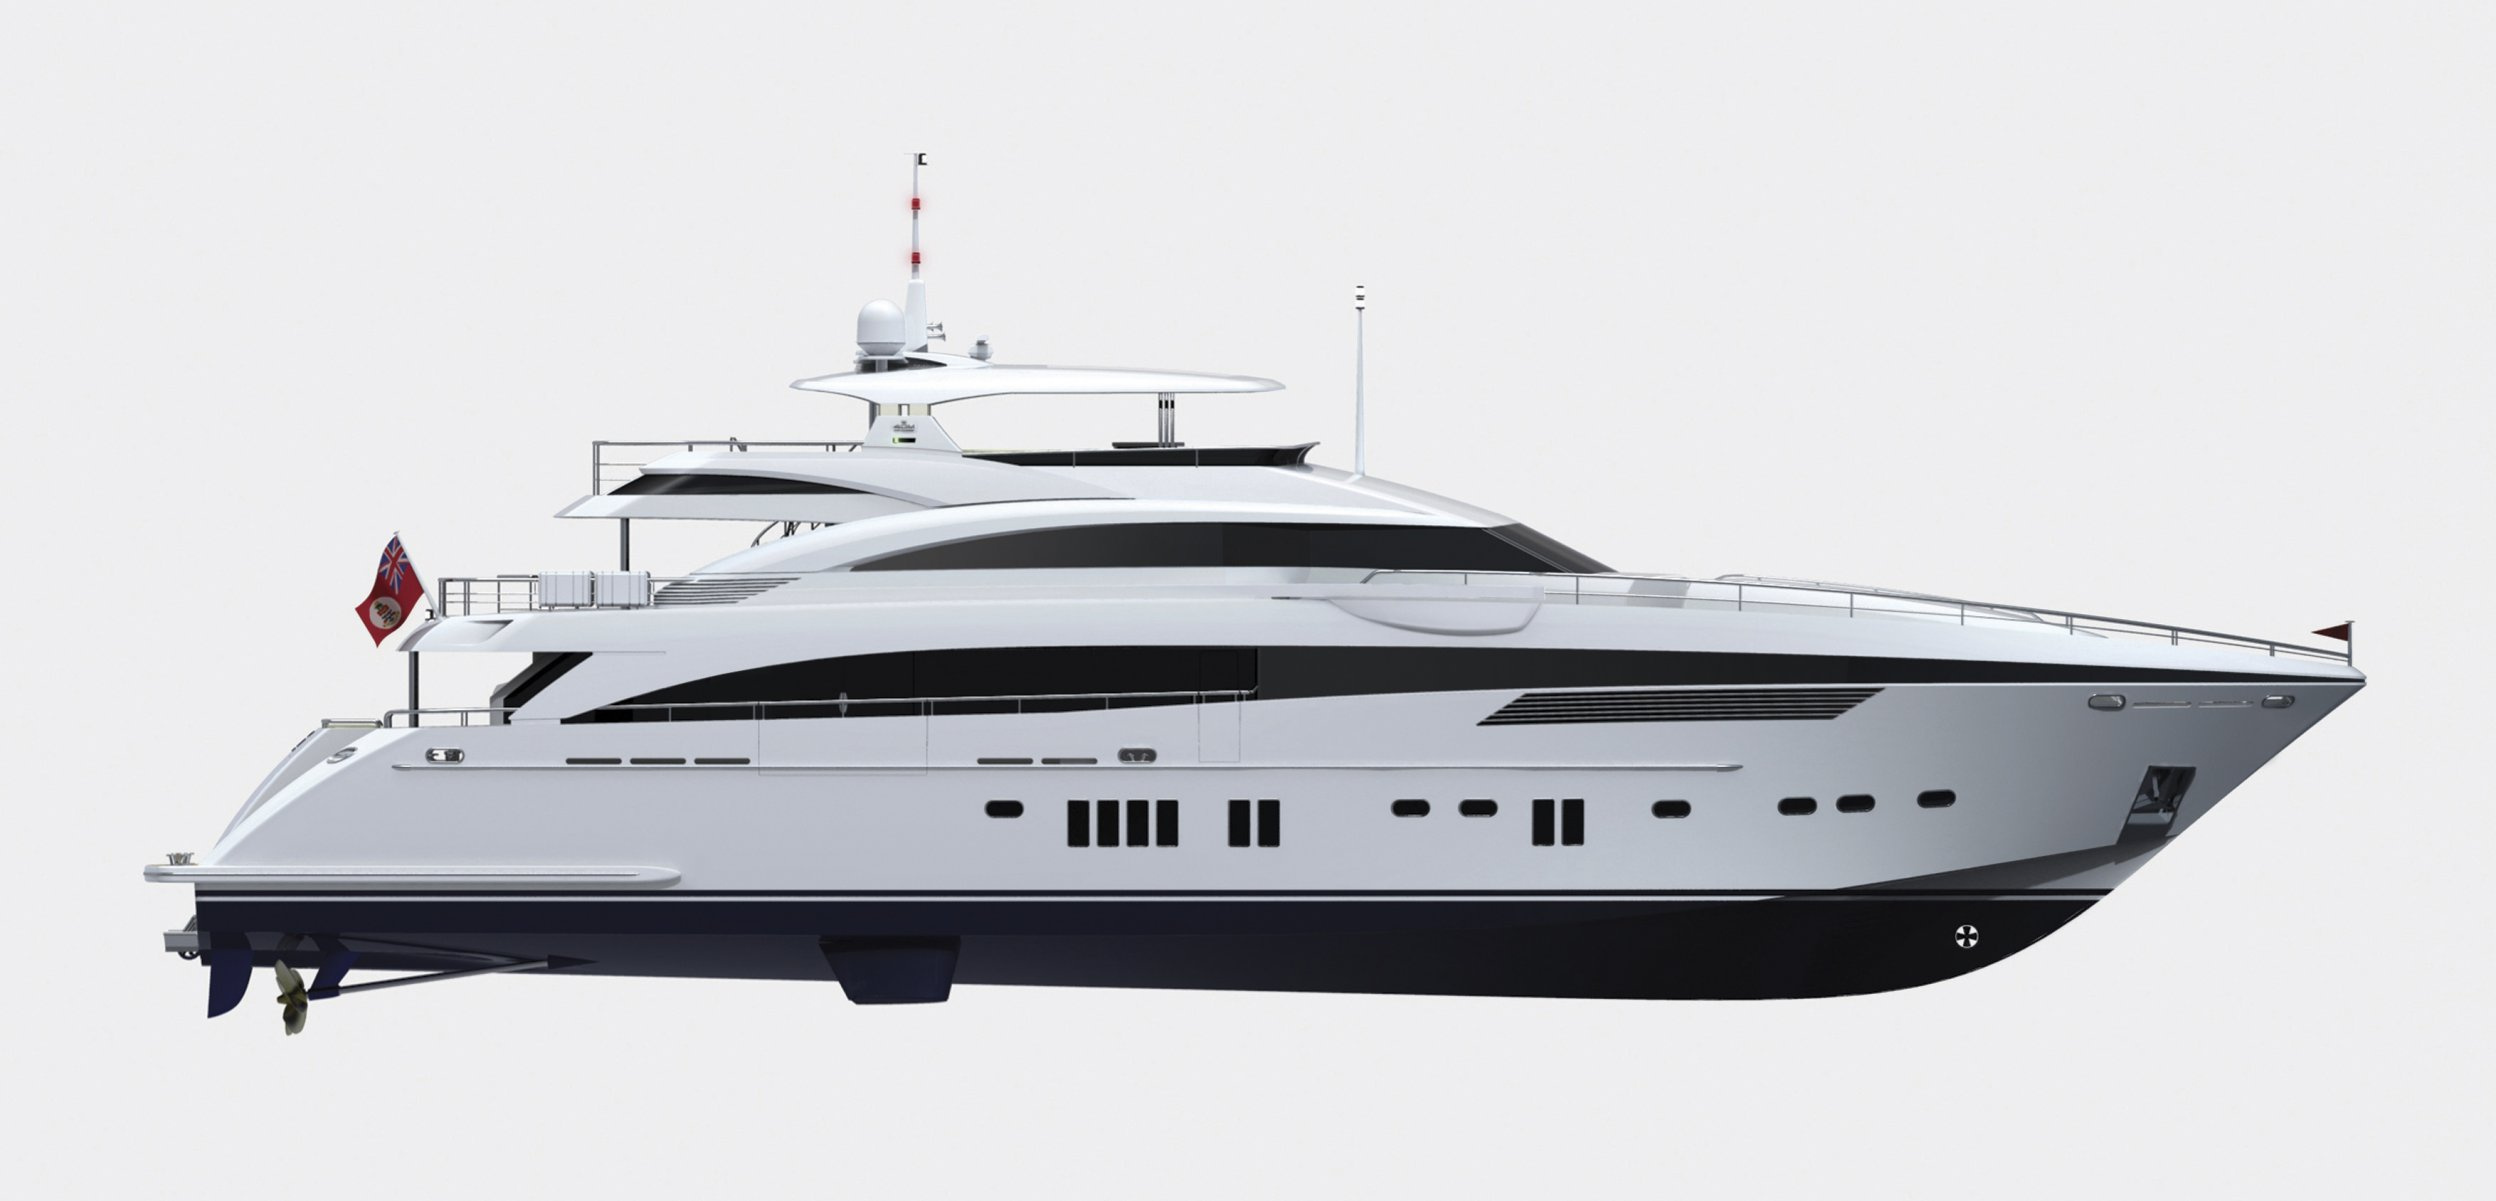 New Princess M Class Series Yachts Spotted At